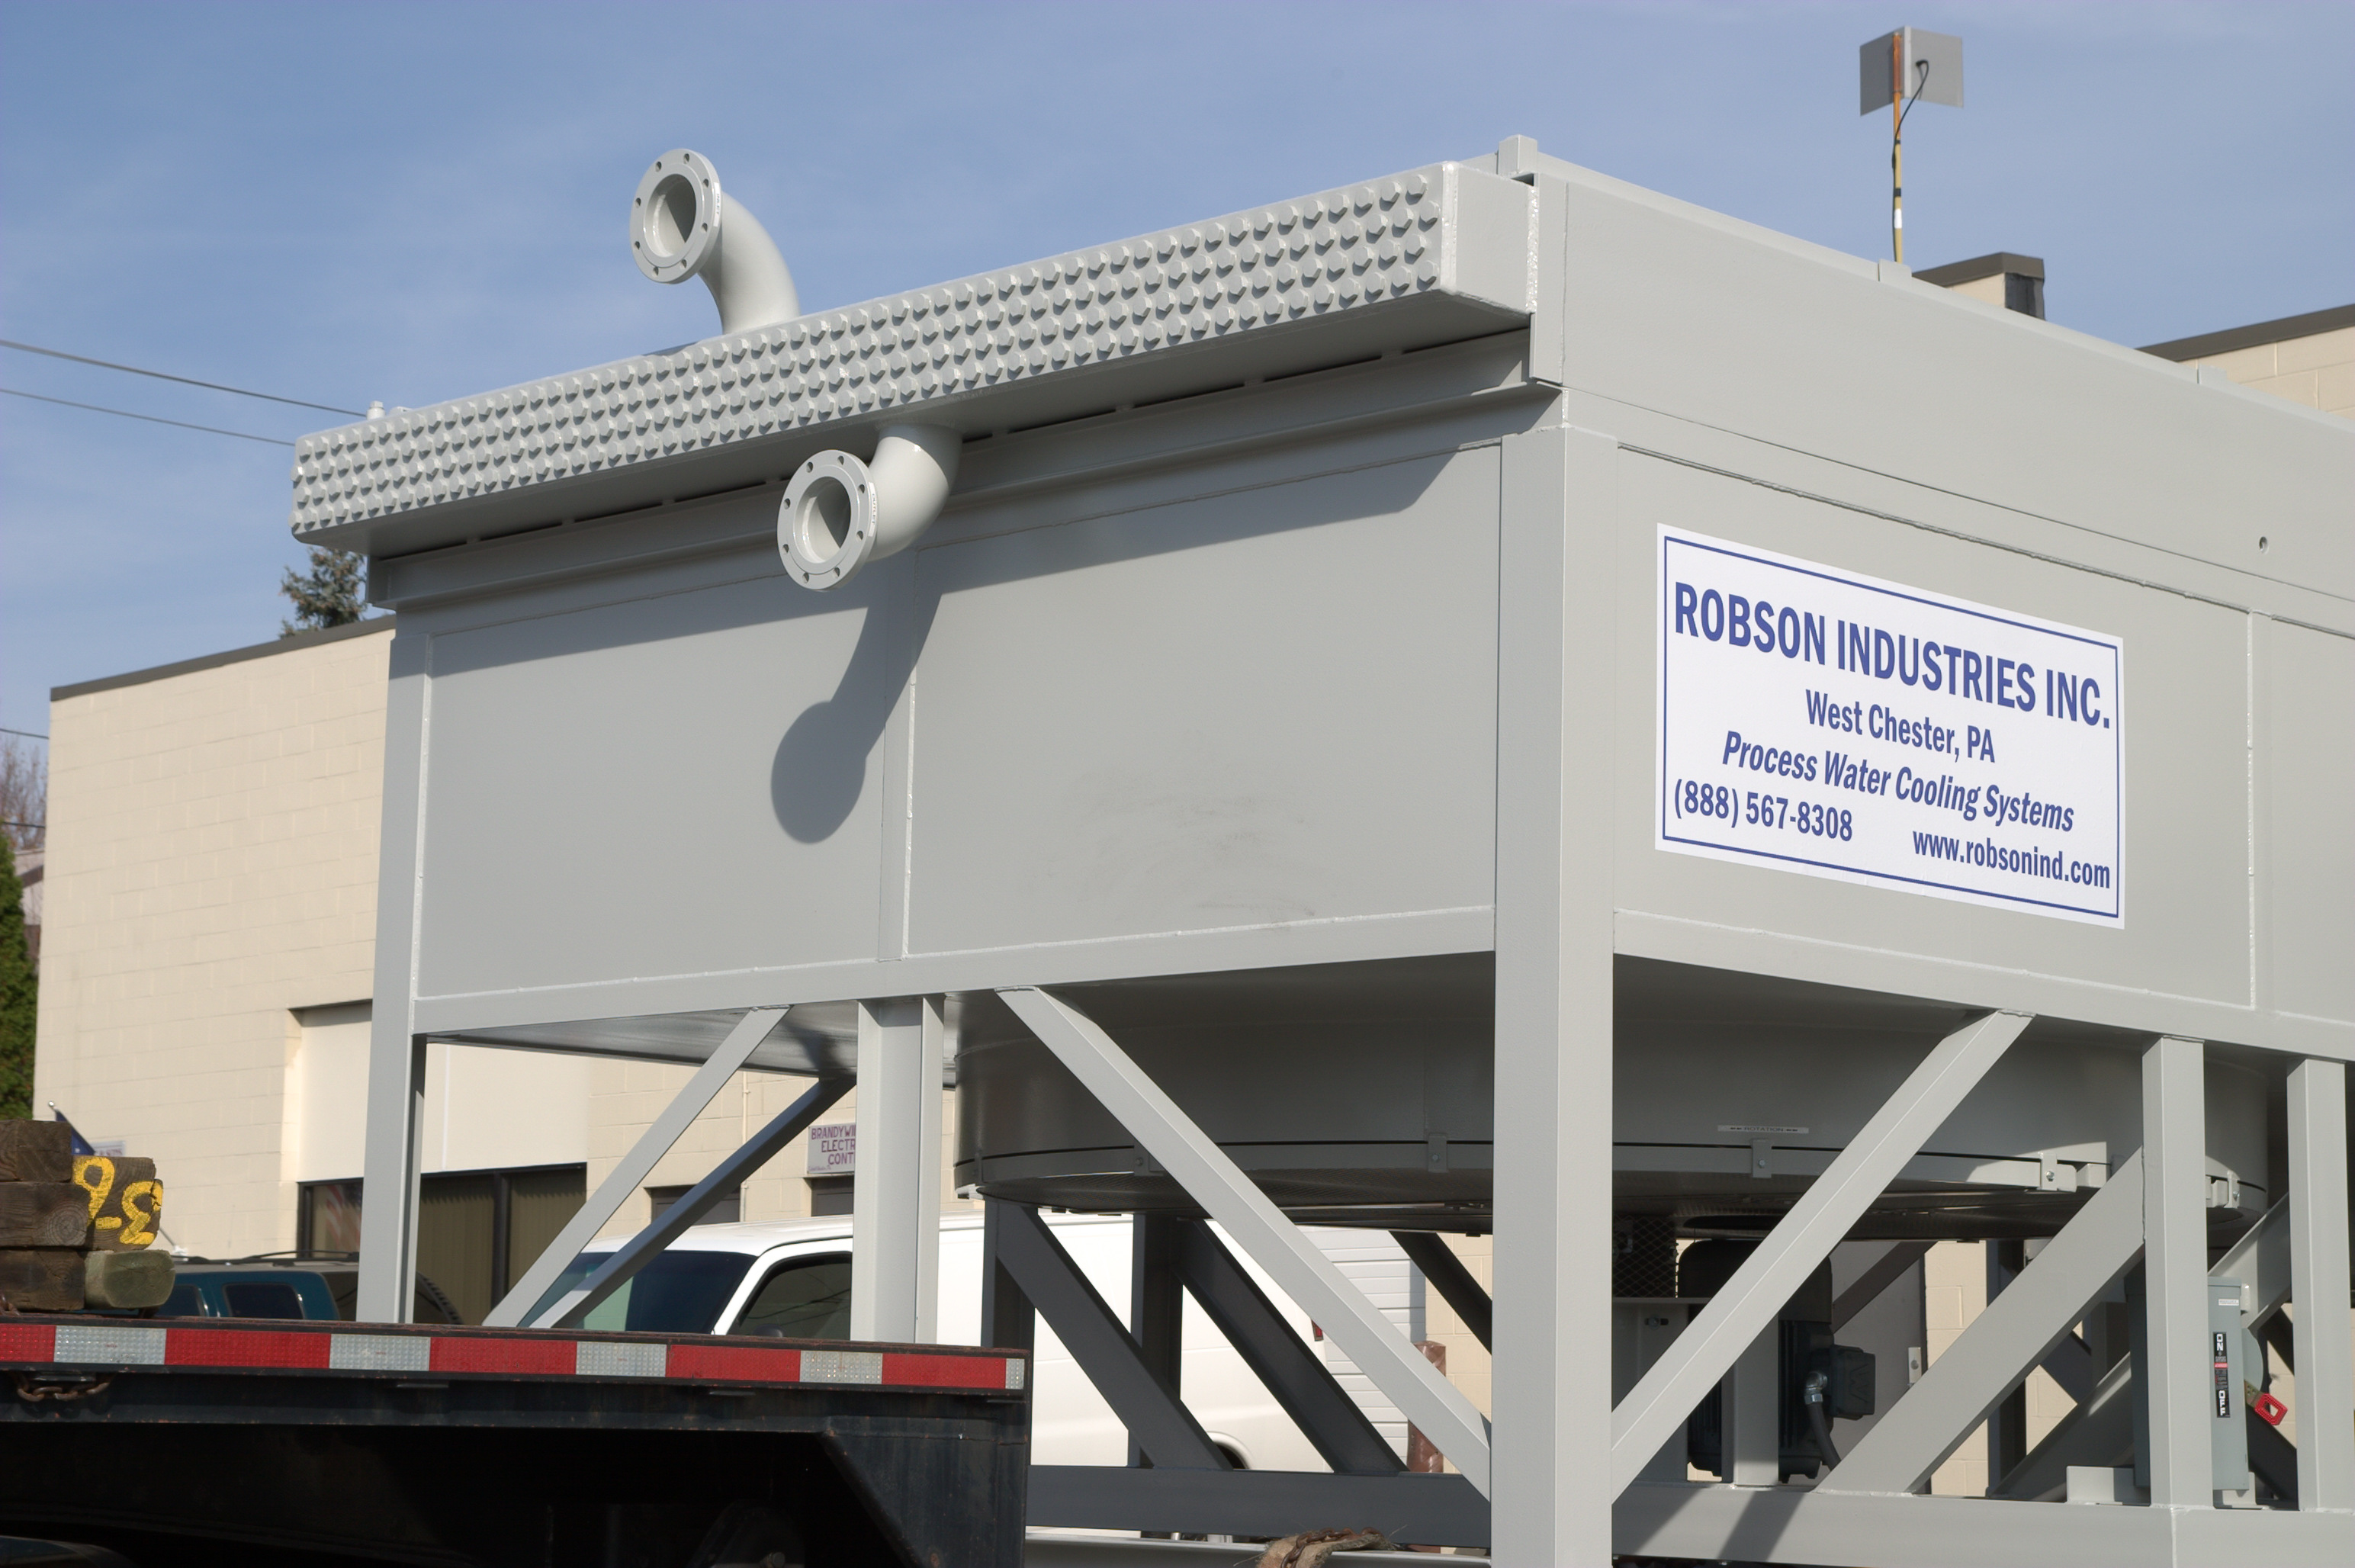 Air-Cooled Heat Exchanger Systems | Robson Industries Inc